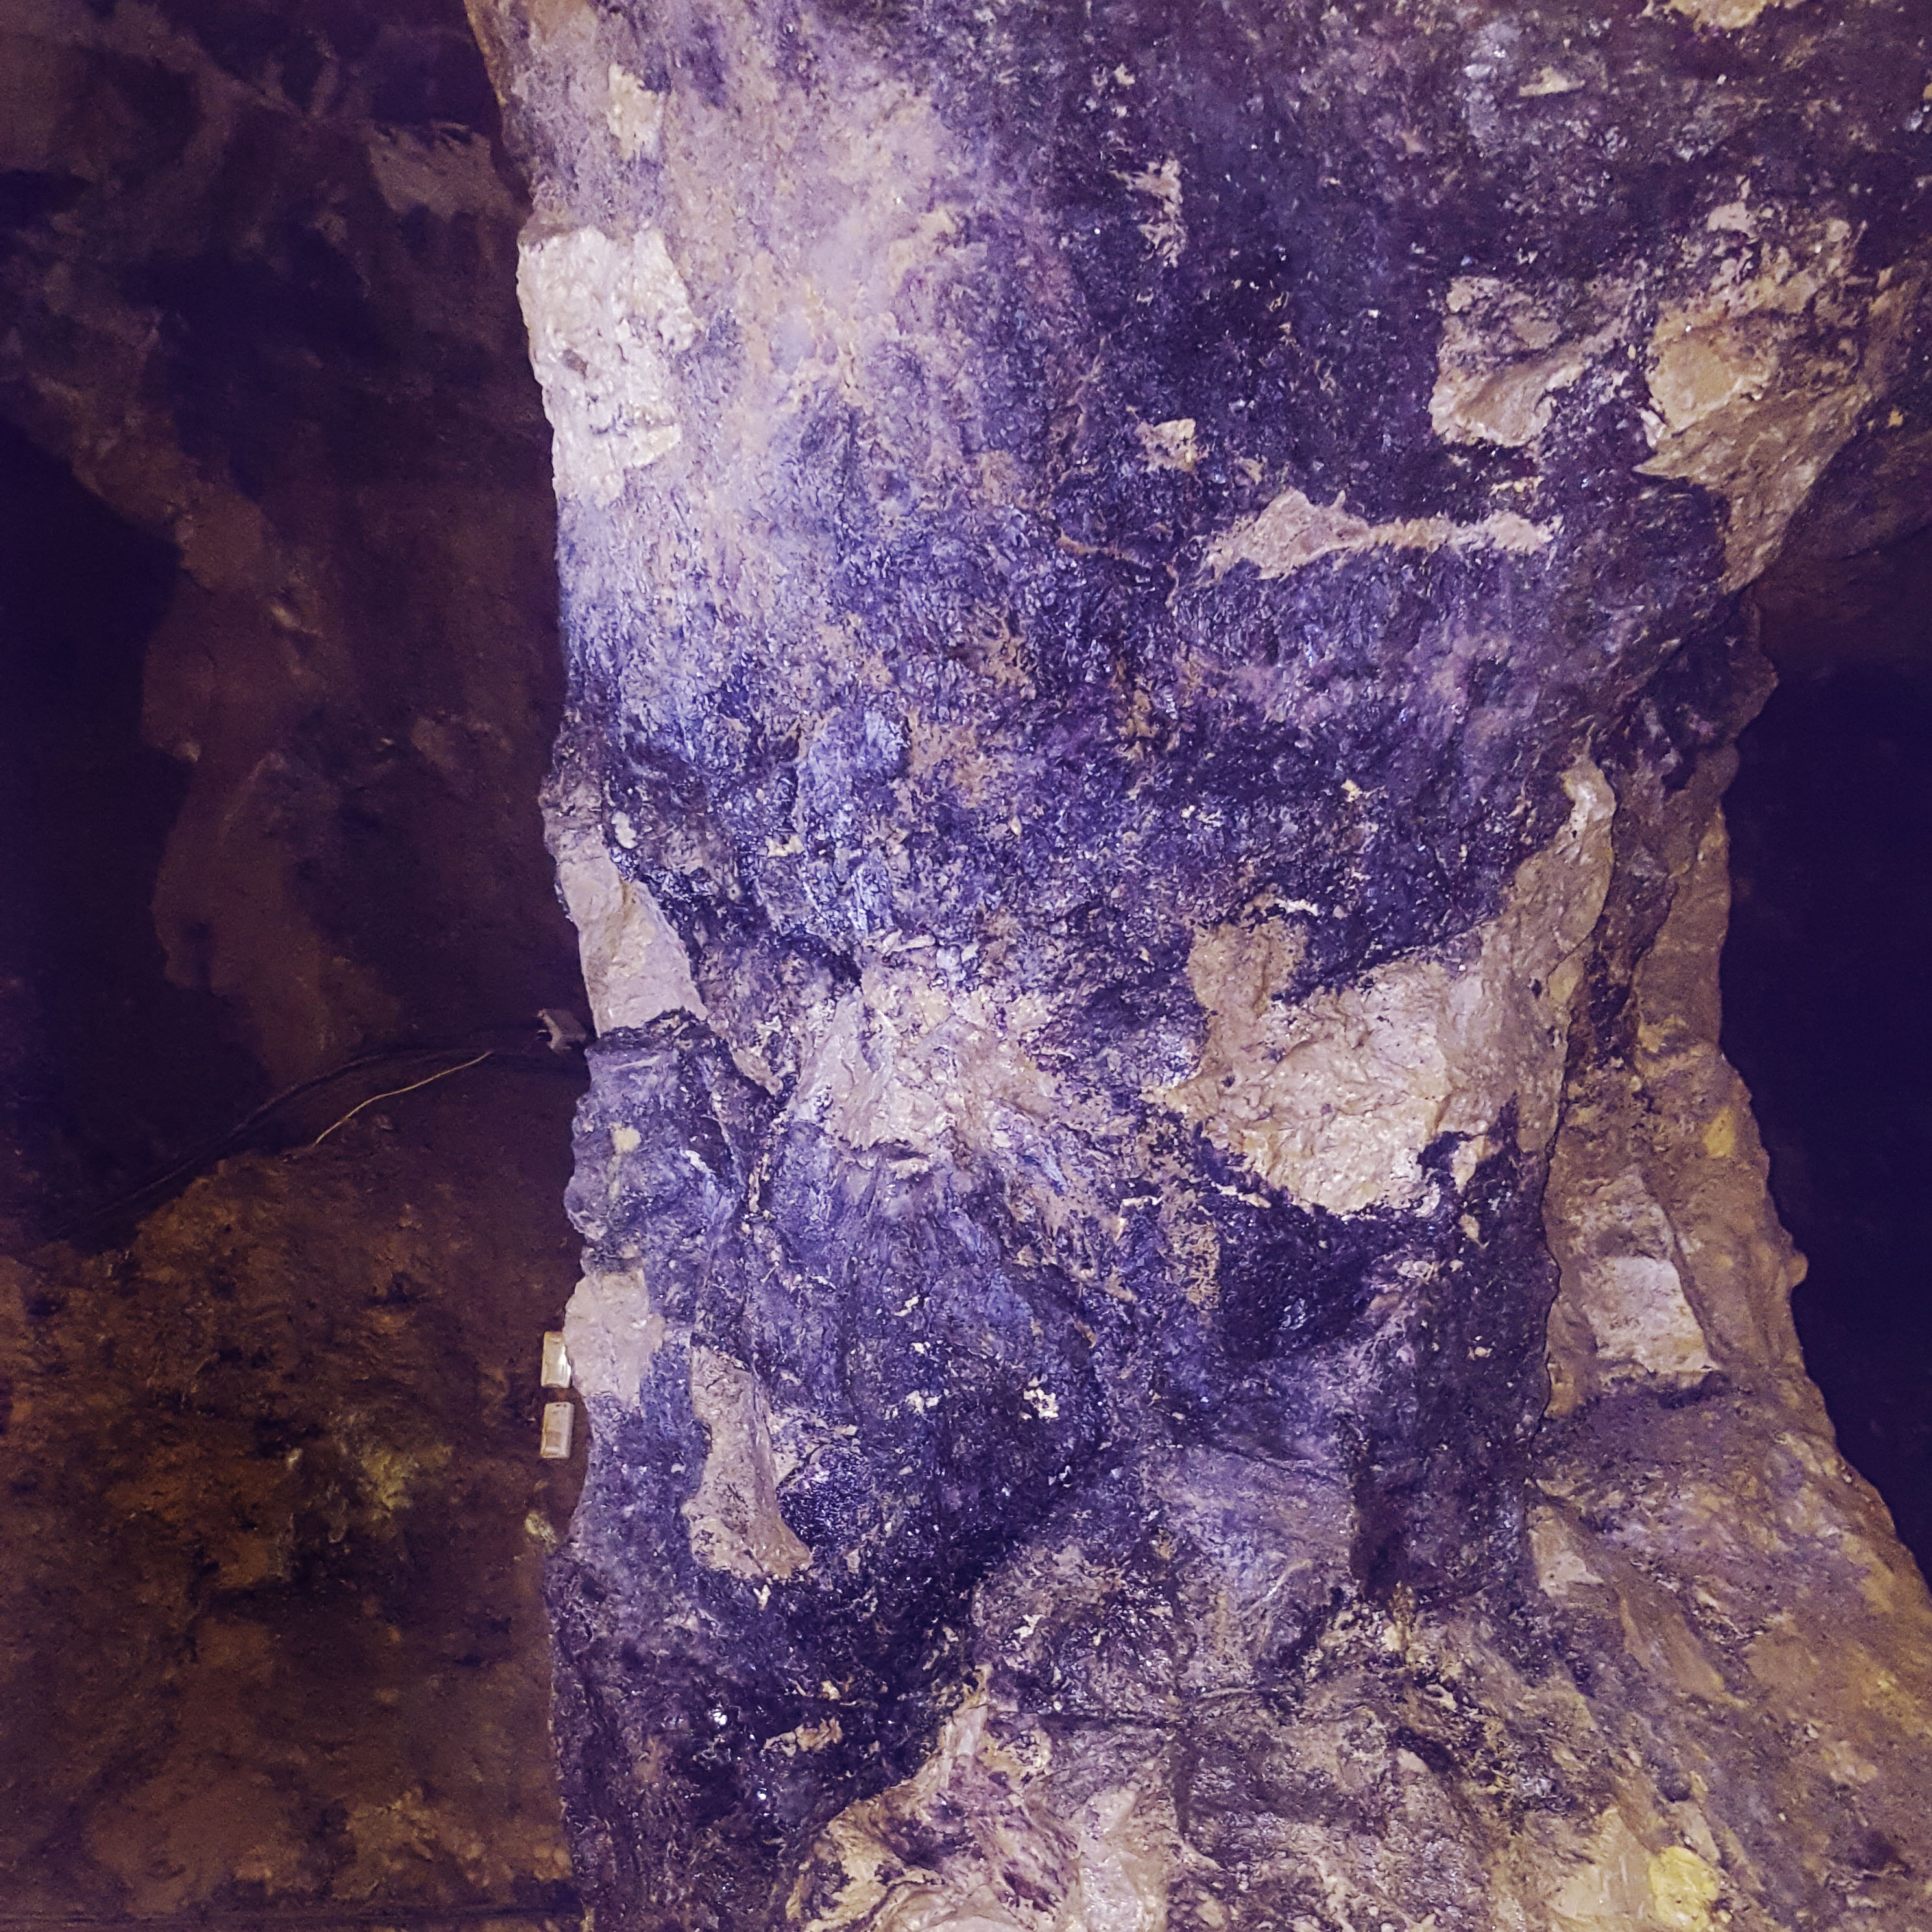 Treak Cliff Cavern - Castleton - Blue John Pillar - The Last Krystallos